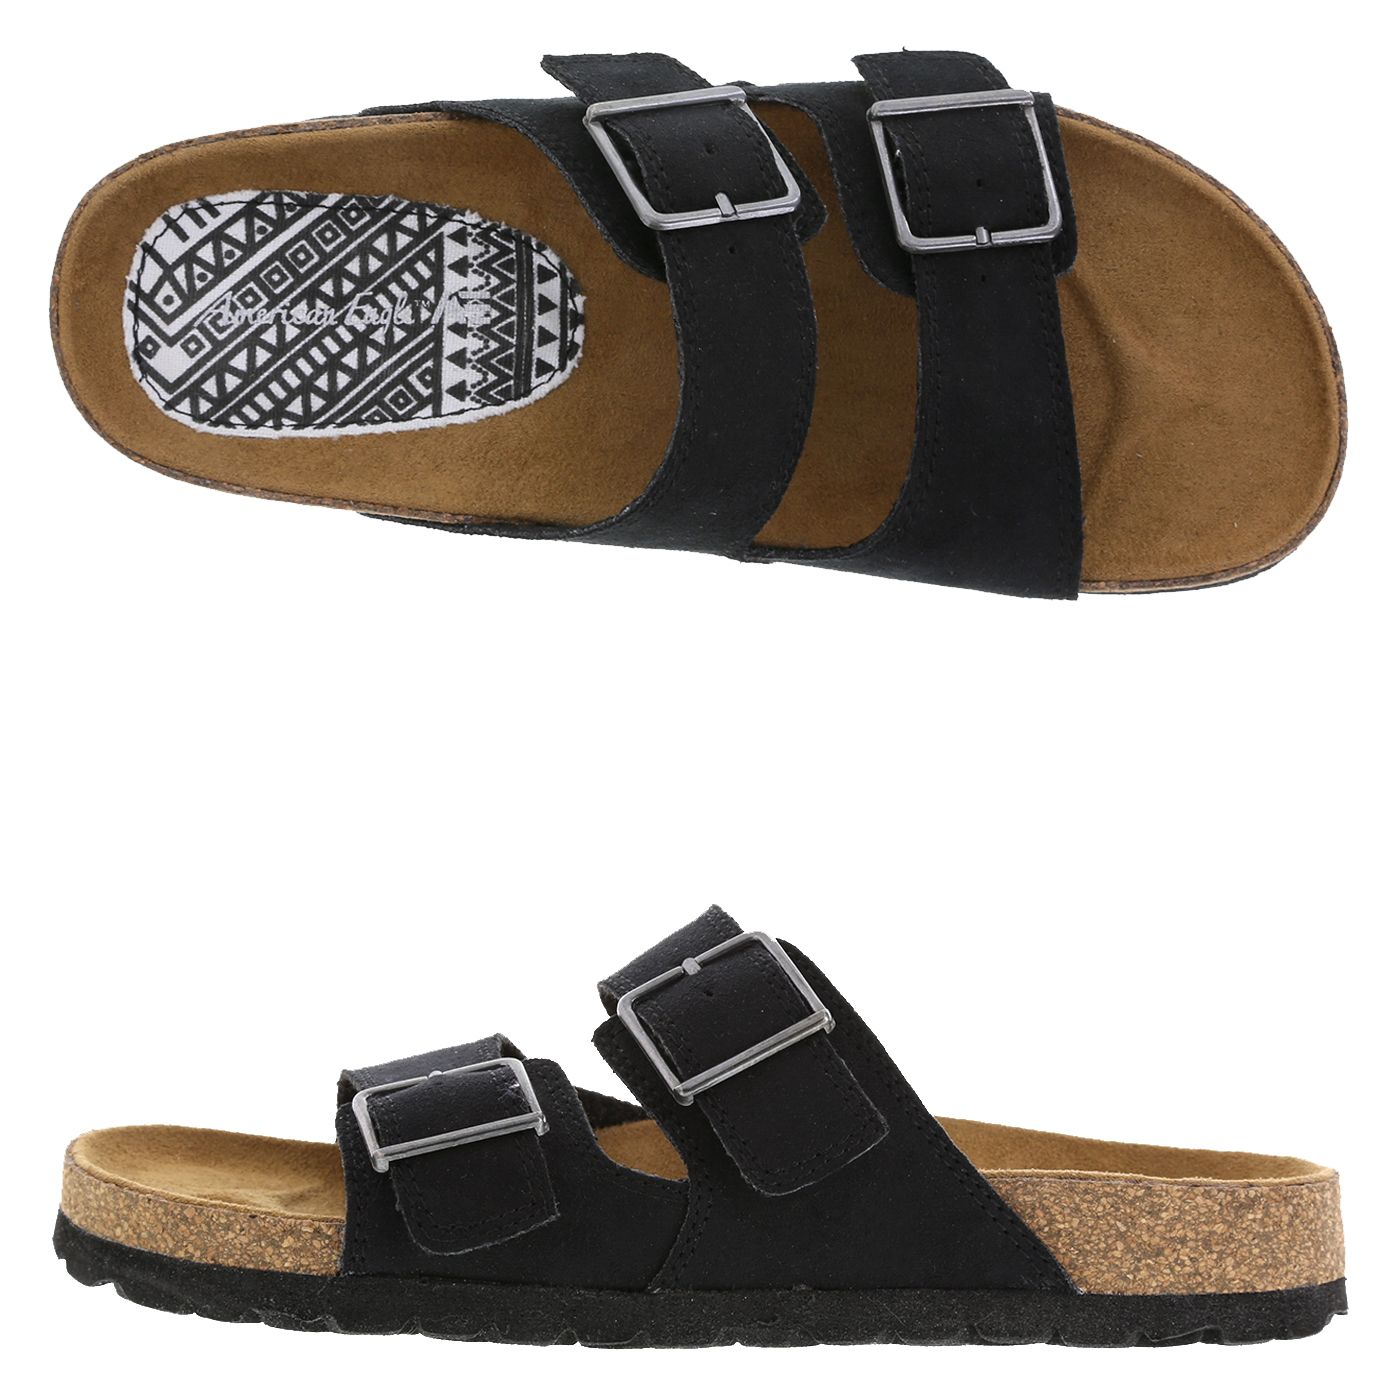 995bc0cd2ba Brought a pair of these today so comfy Womens Robyn Flat Slide